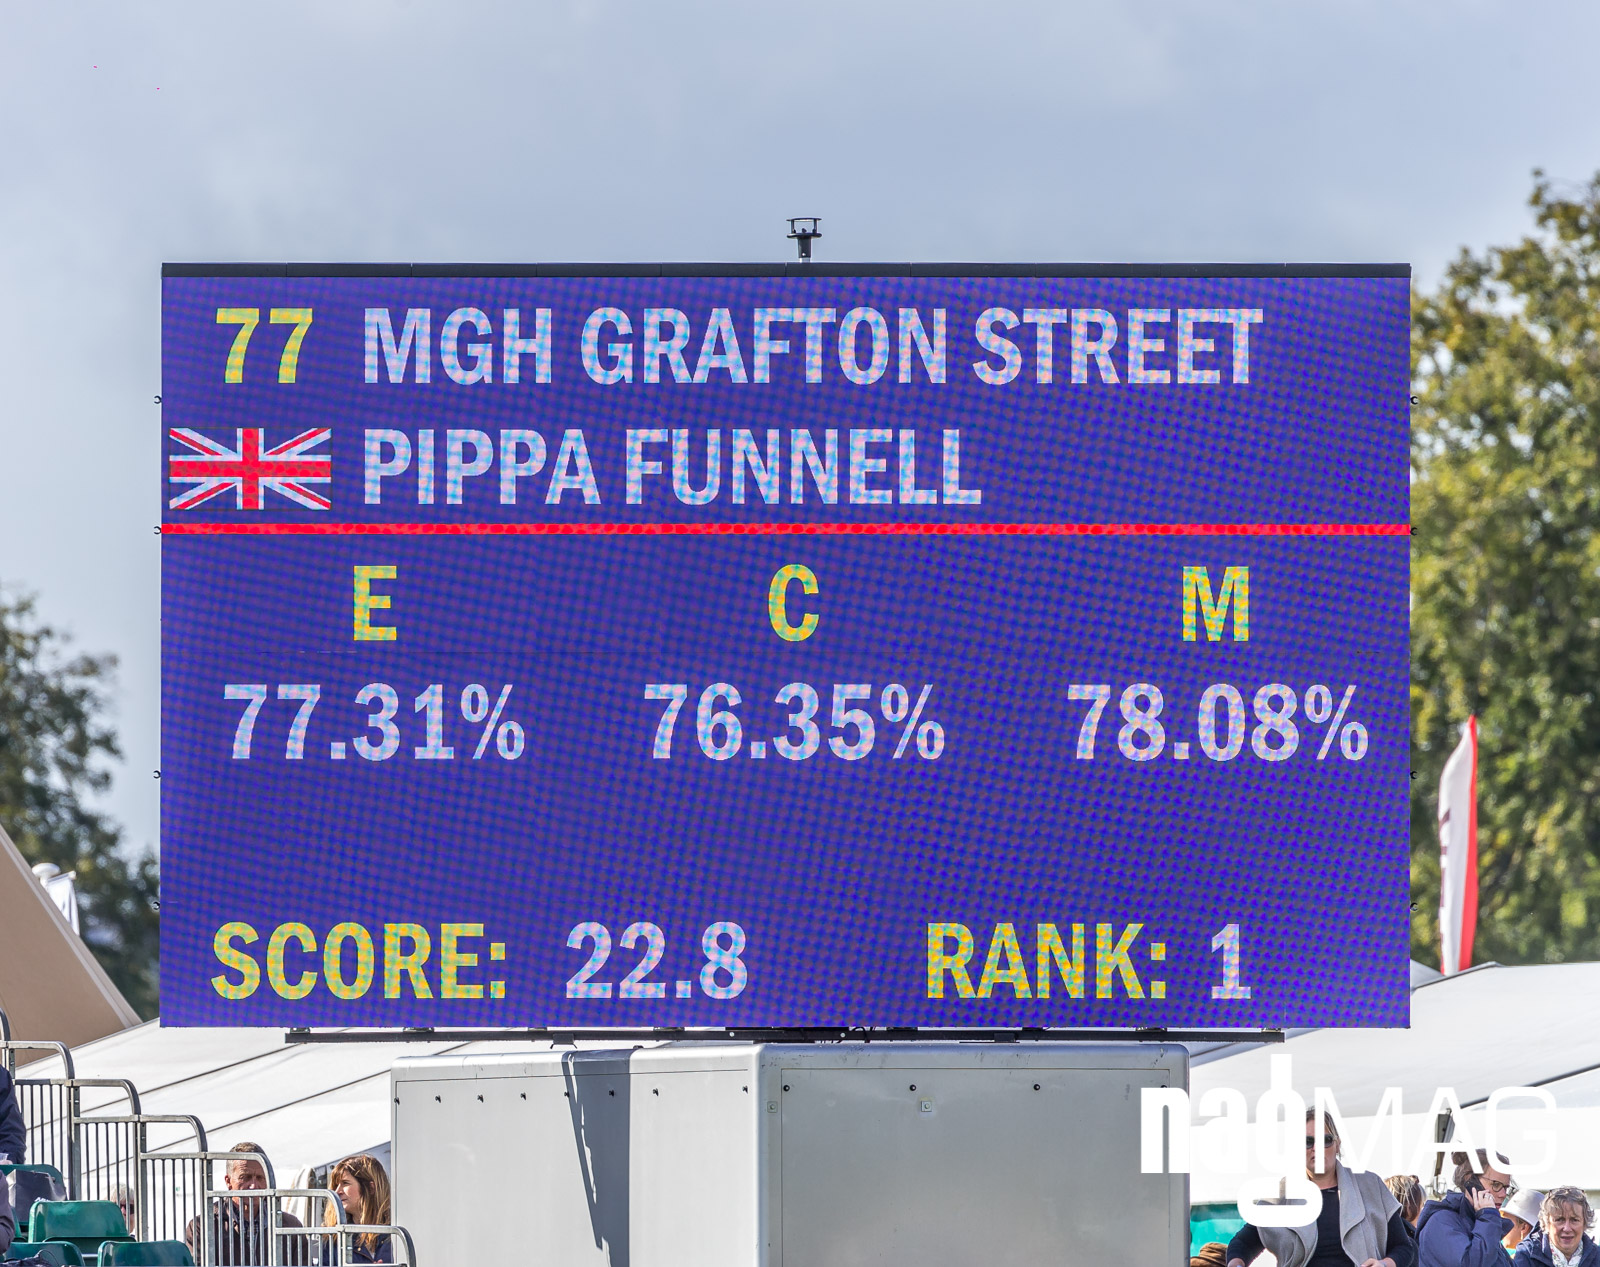 Pippa Funnell on MGH GRAFTON STREET